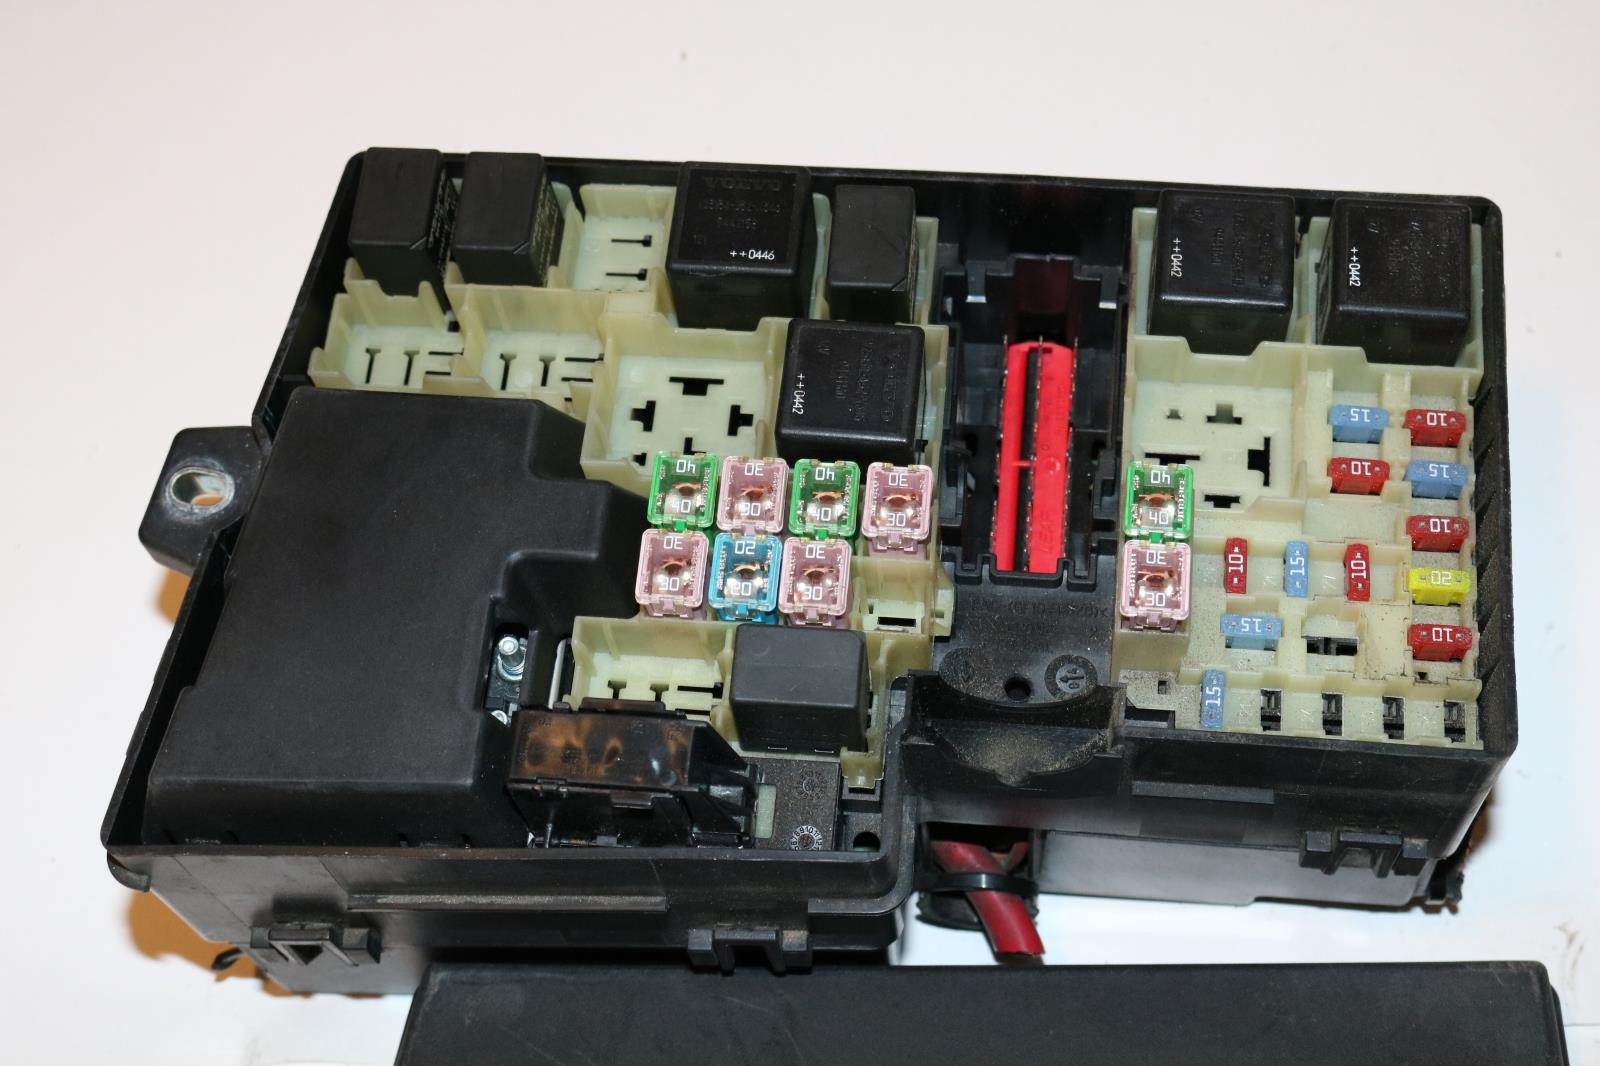 65E81 Fuse Box In Volvo V50 | Digital Resources on volvo s40 fuse box location, volvo s40 fuse diagram, ford focus lighter fuse, bmw x5 lighter fuse,